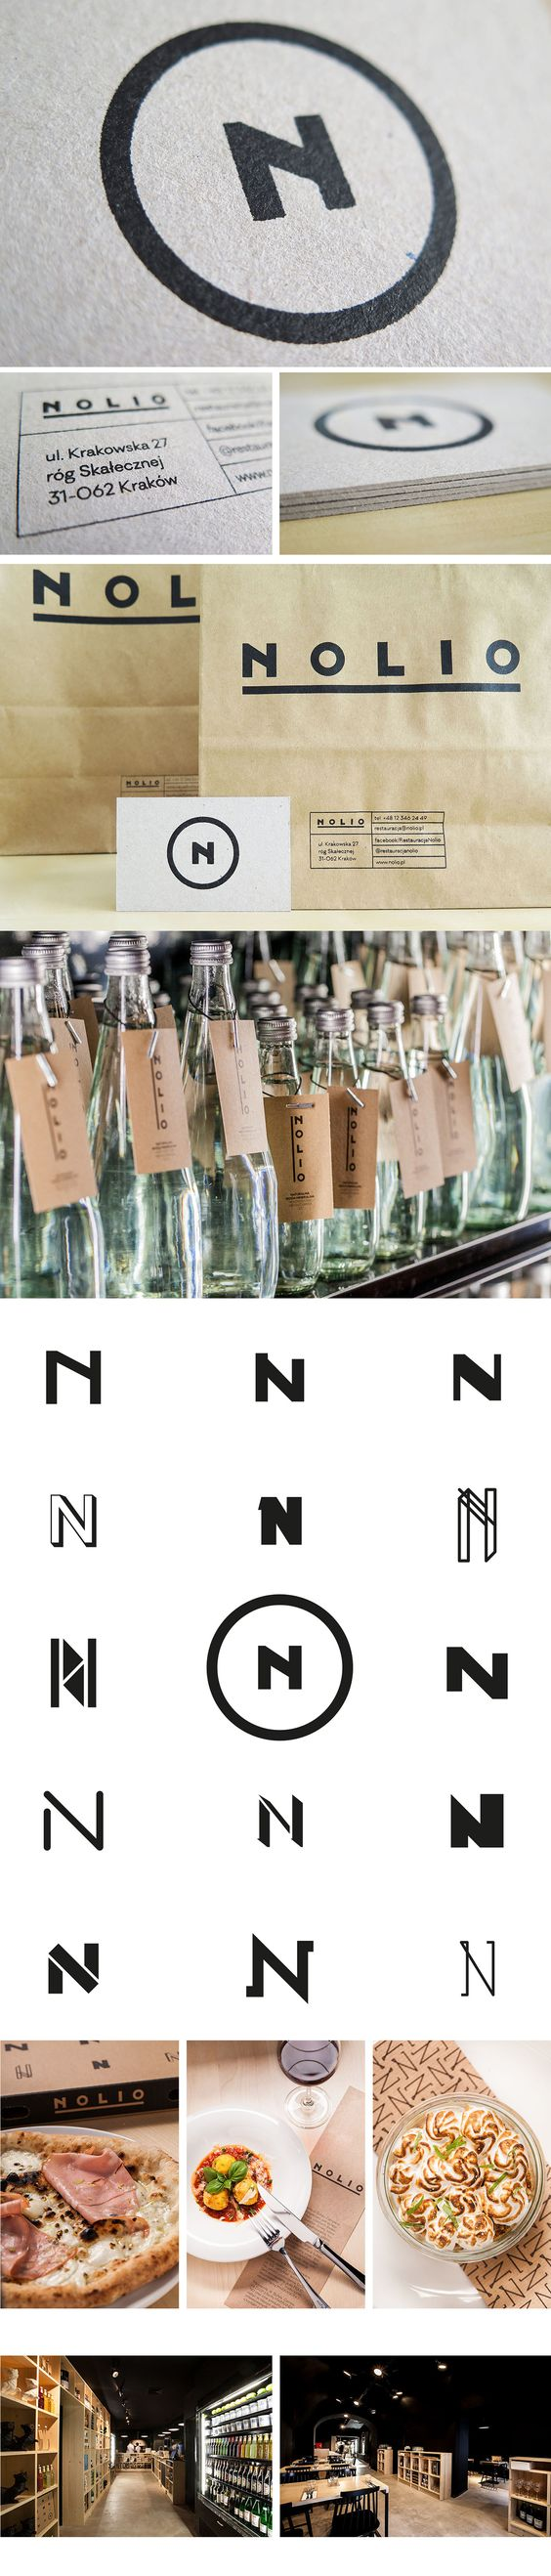 Best Restaurant Names Ideas On Pinterest Restaurant Style - 27 funny store names that are actually pure genius